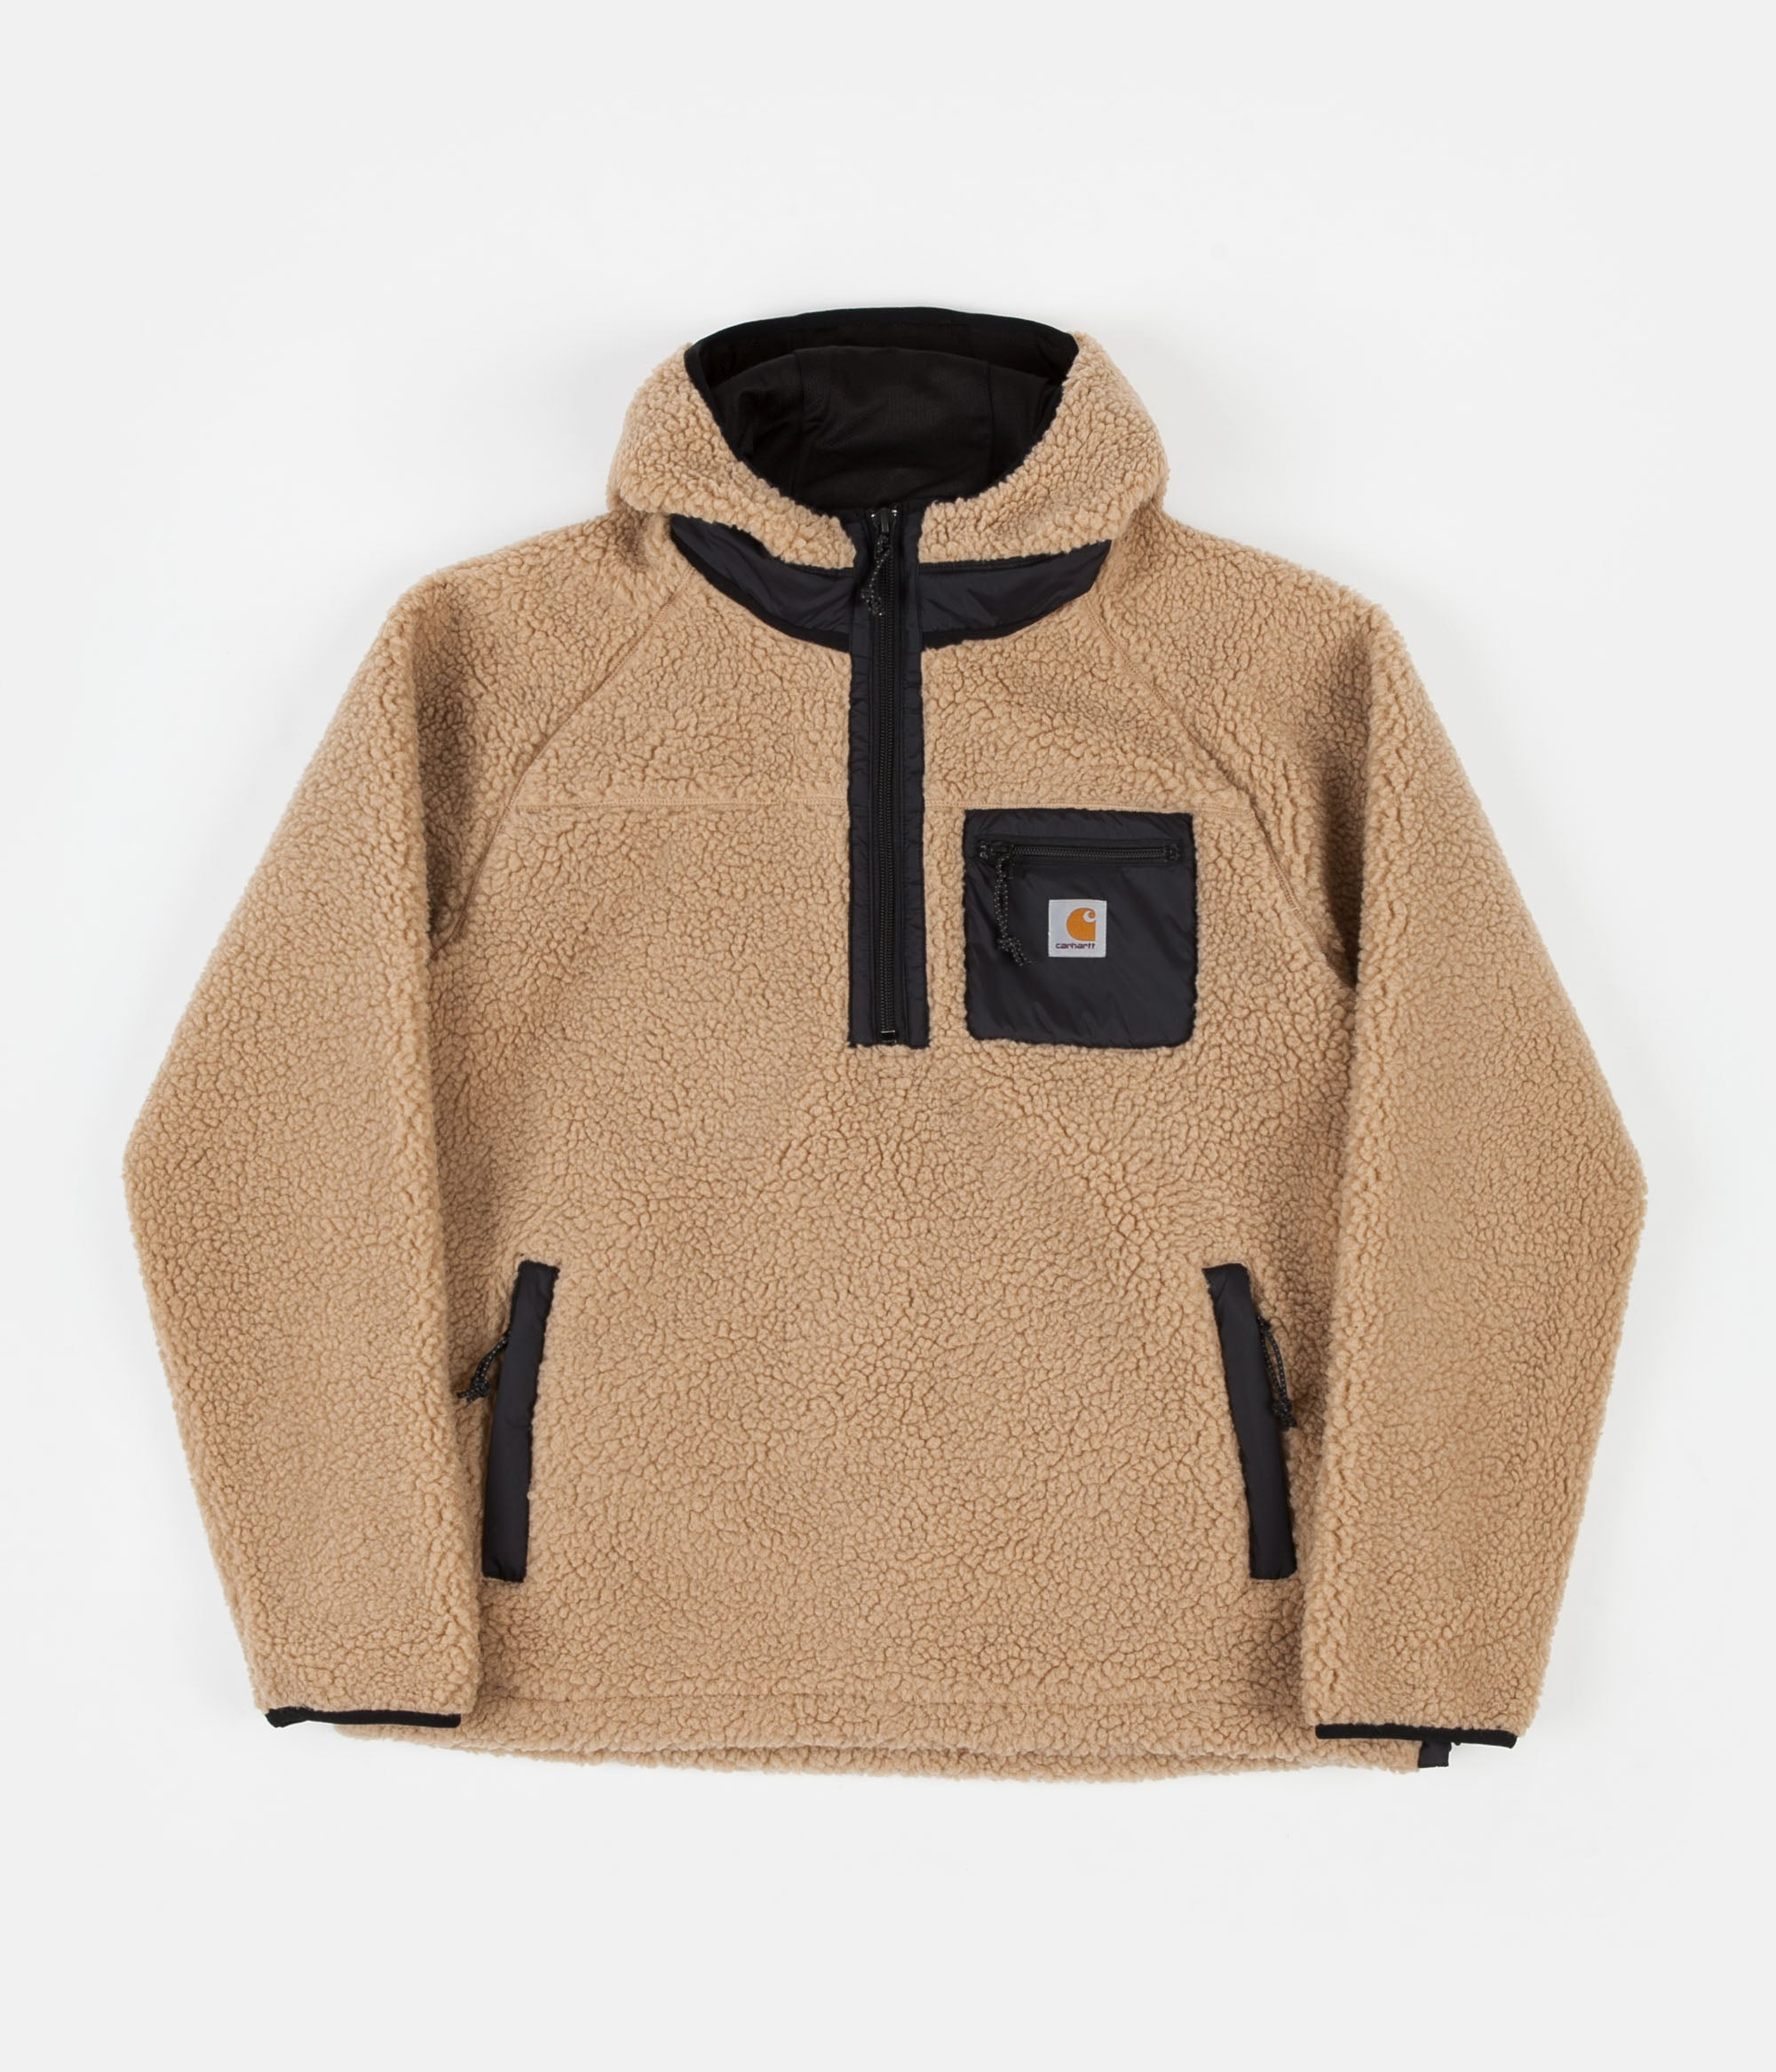 Carhartt Prentis Pullover Jacket Dusty Hamilton Brown